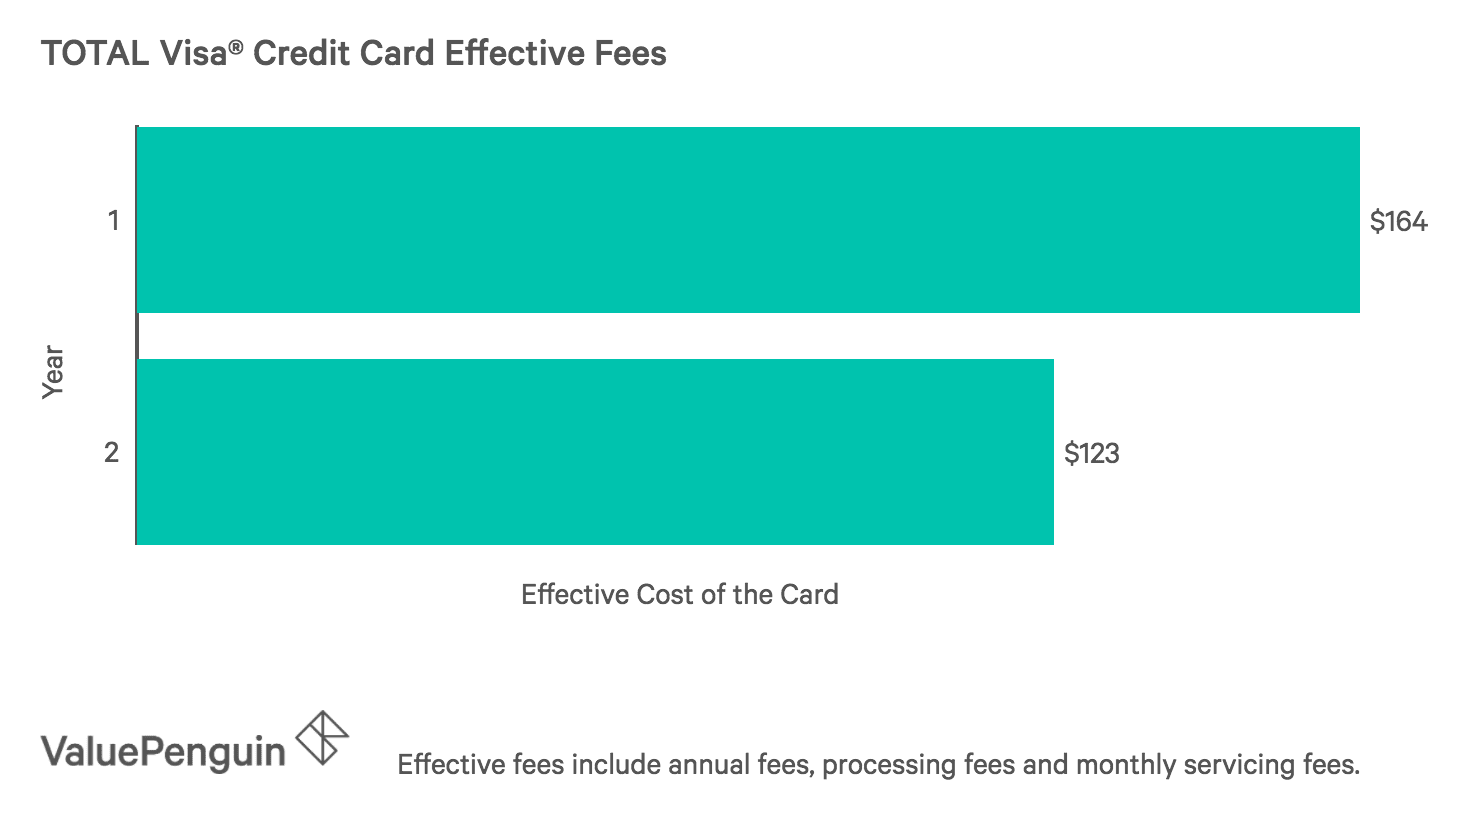 TOTAL Visa Credit Card Fees Through Two Years